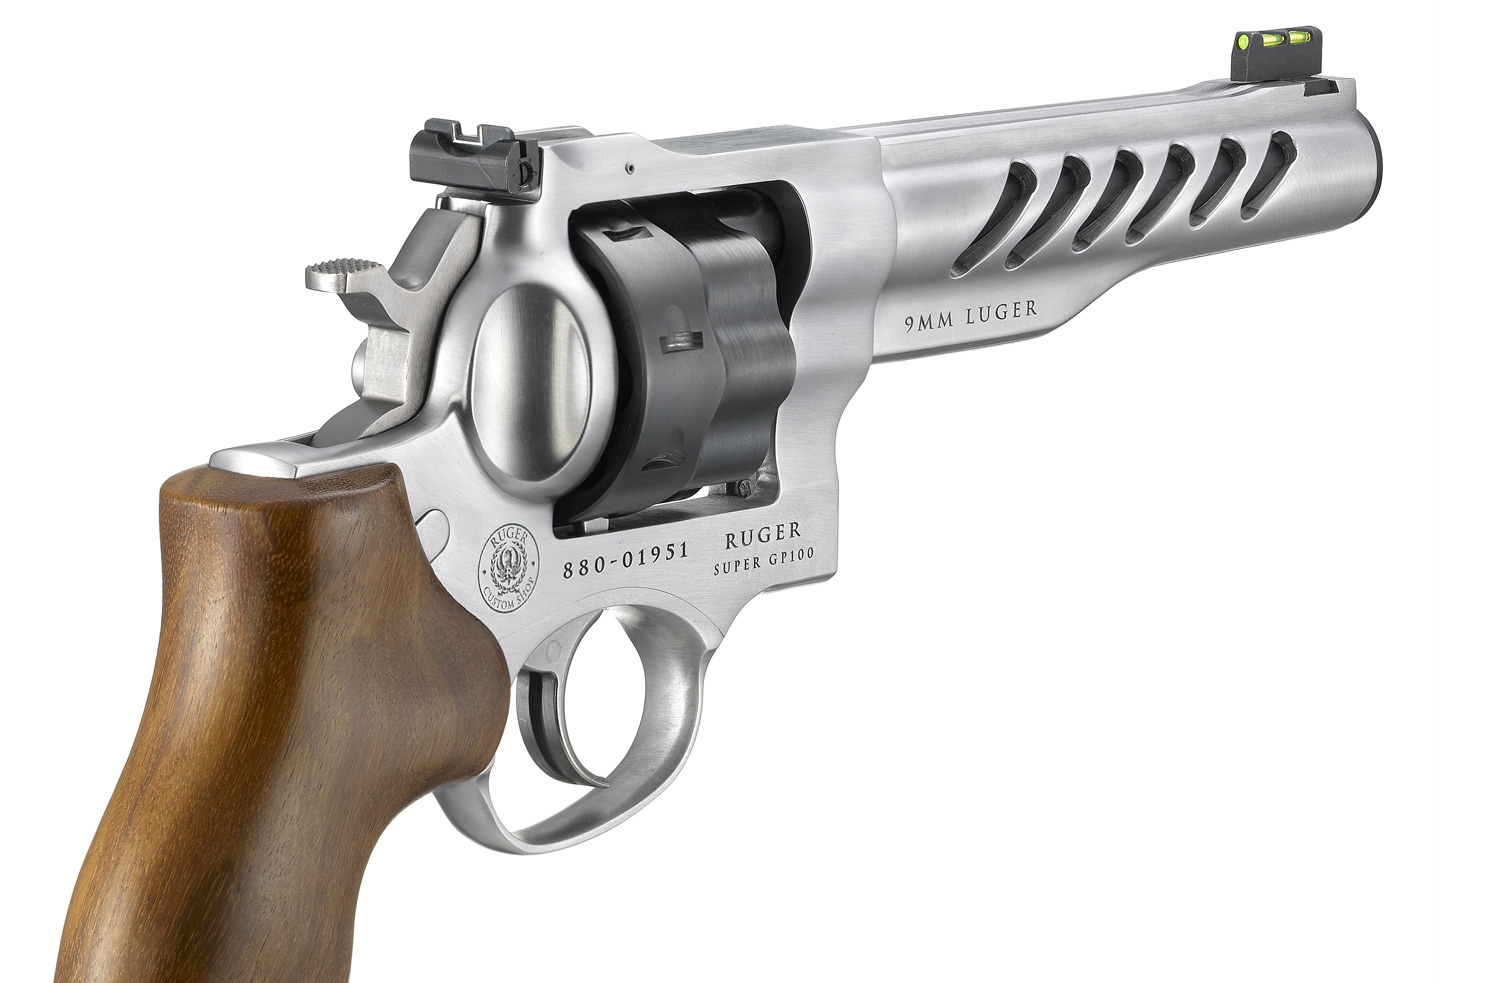 Ruger SUPER GP100 Custom Shop Competition Revolver Now Available in 9mm Luger (3)